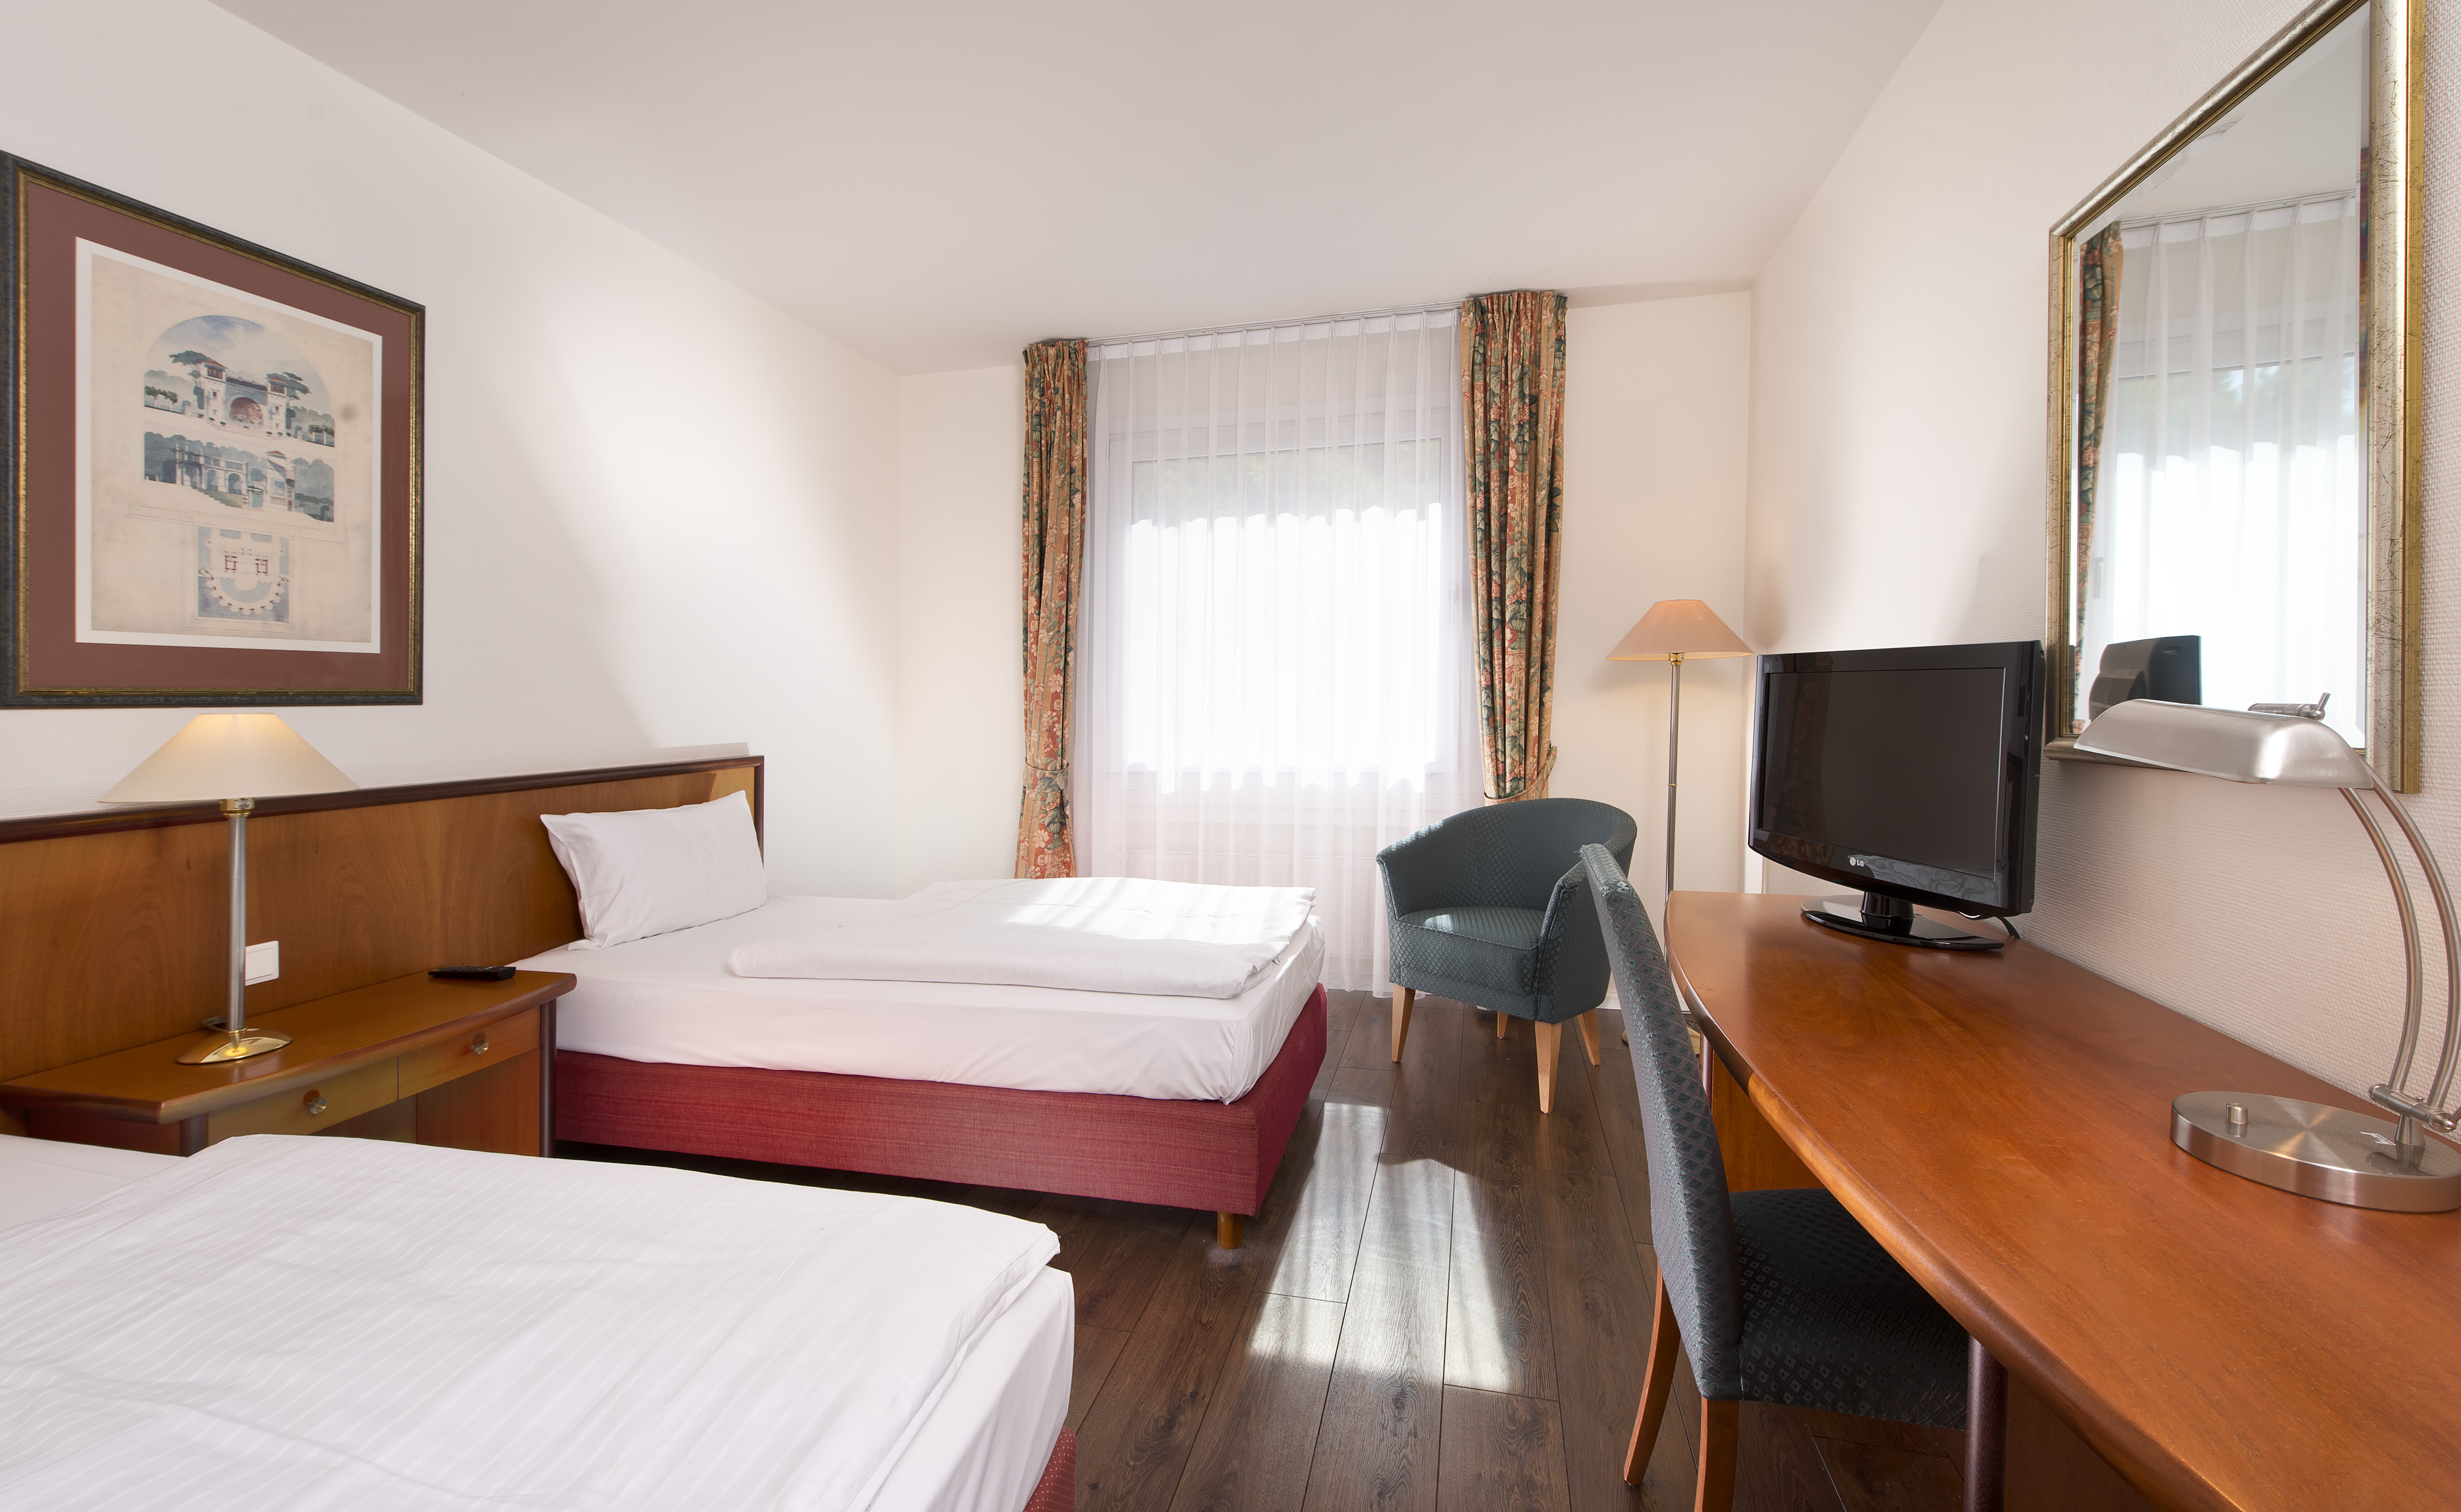 Business Room With Twin Beds In Wyndham Garden Hotel Hennigsdorf | ©  Wyndham Garden Hennigsdorf Berlin ...